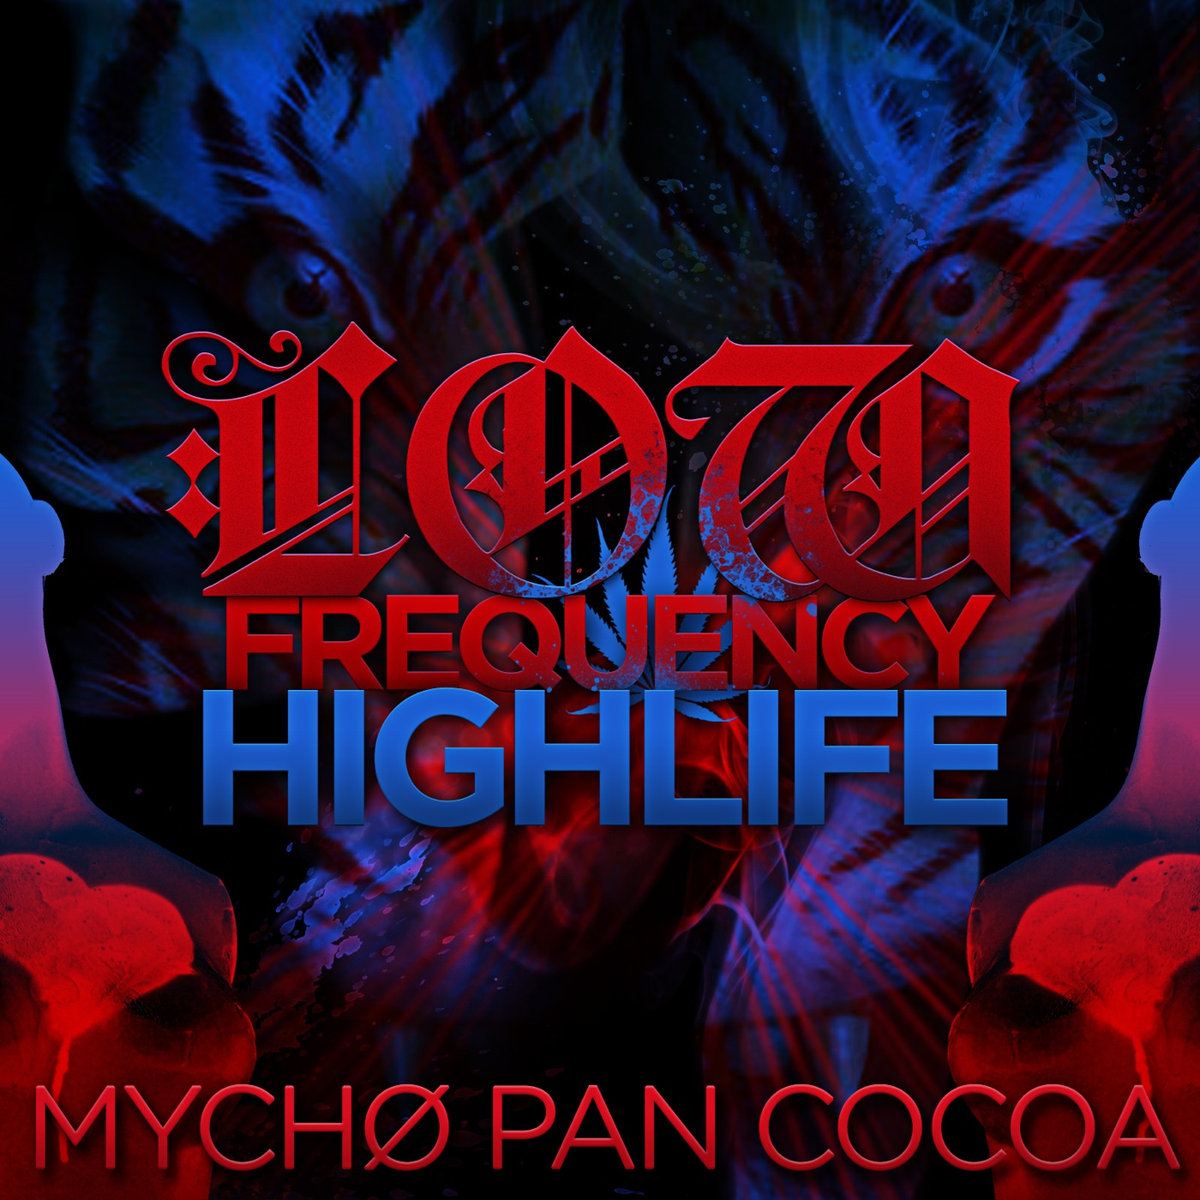 Mycho Pan Cocoa - West Coast Nitrous Circus (Zeno Remix) @ 'Low Frequency High Life' album (electronic, dubstep)